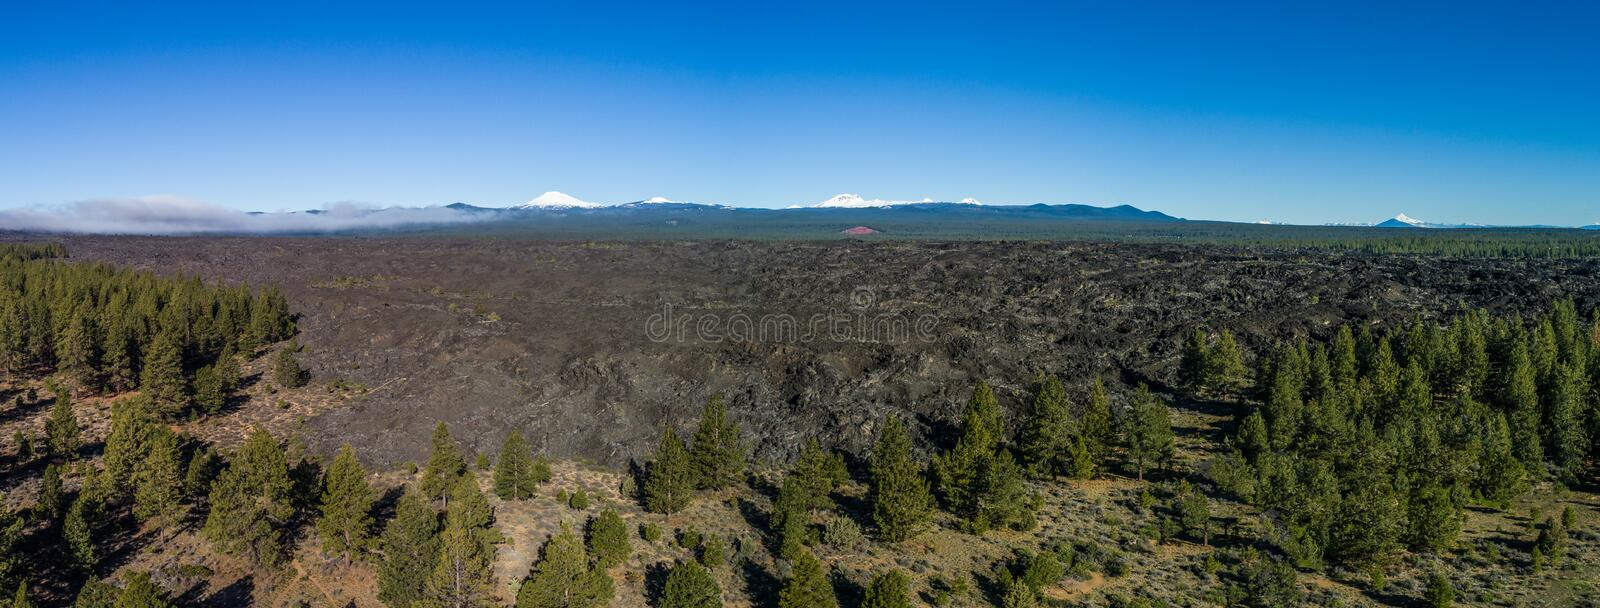 Aerial of Lava Flow panorama near Bend, Oregon stock photos